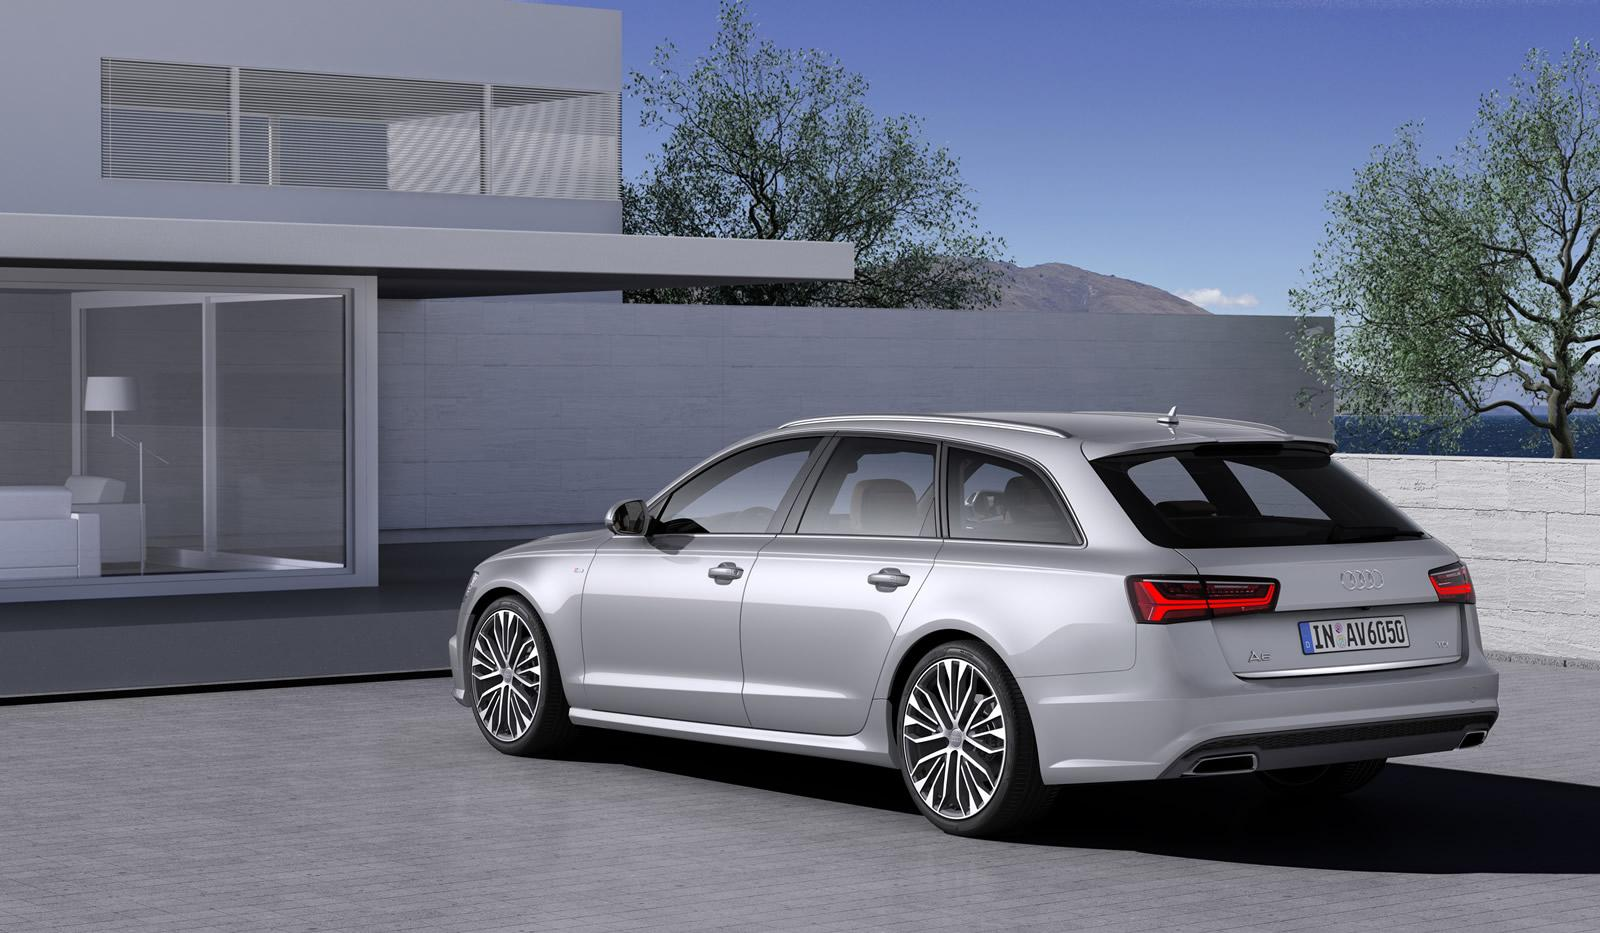 2015 Audi A6 Facelift Makes Video Debut in Avant ultra Form ... Audi A Ultra on buick park avenue ultra, audi a1 ultra, buick rendezvous ultra, lexus es 350 ultra, audi r18 ultra,